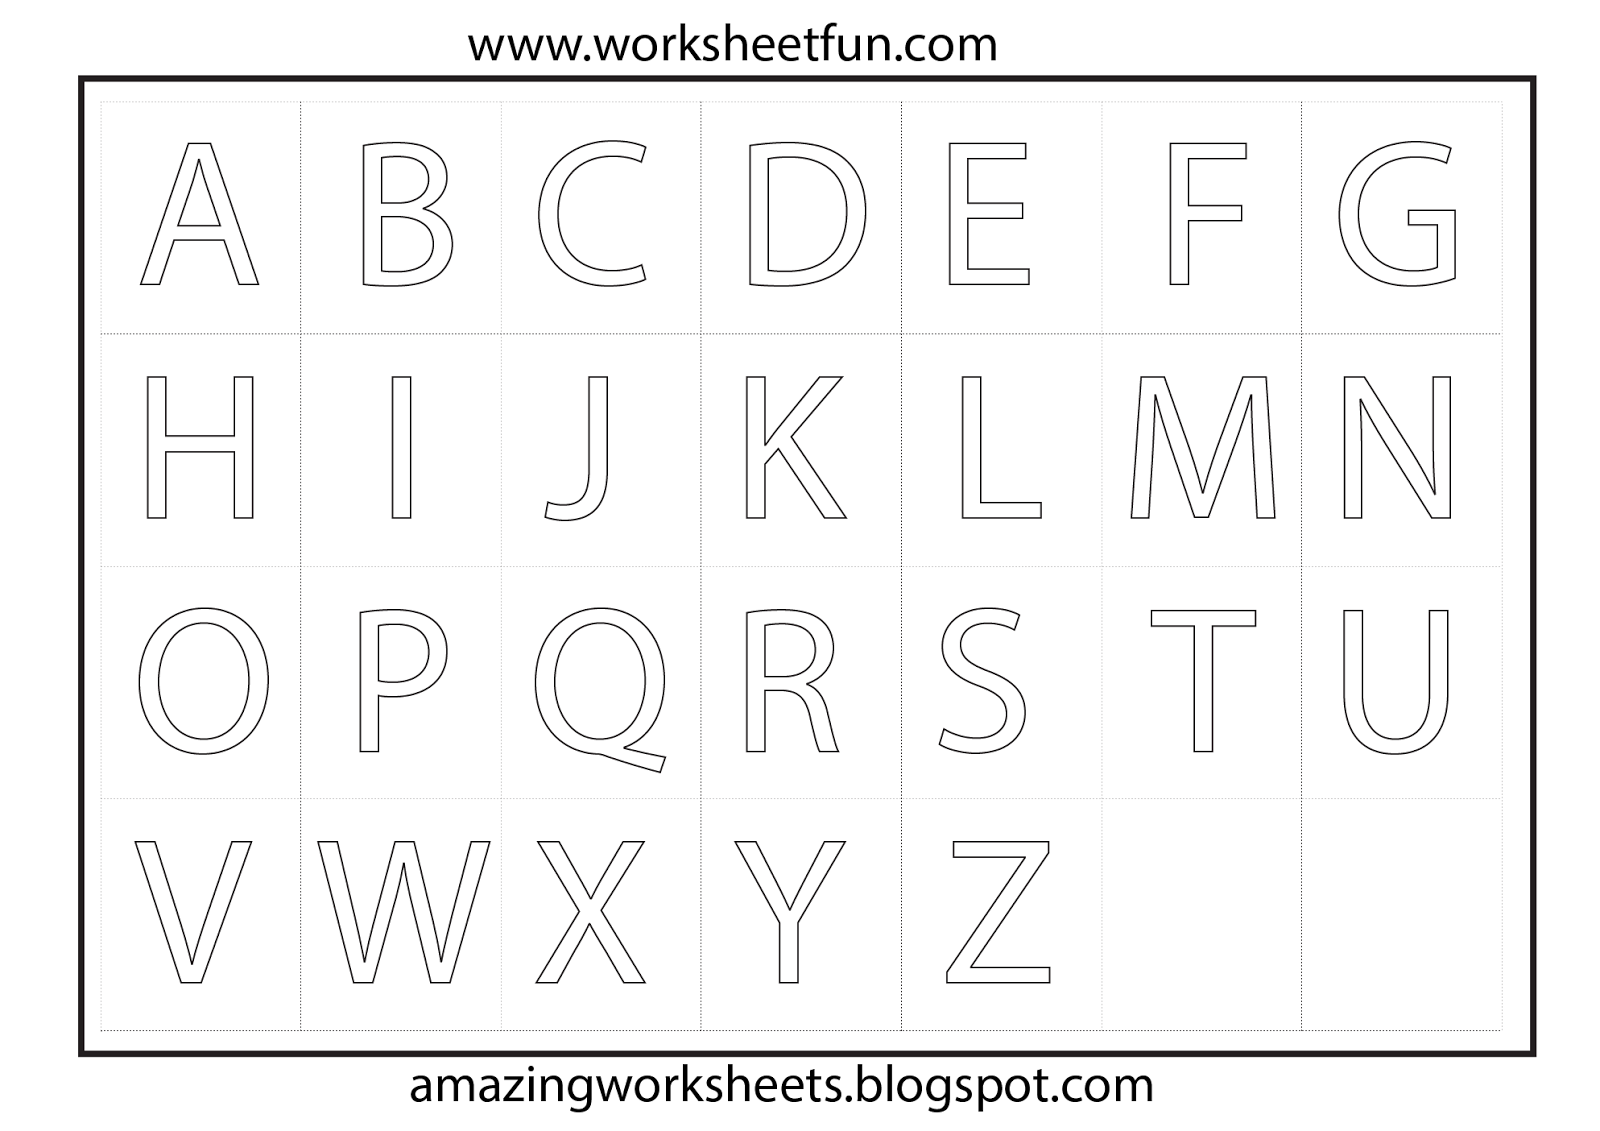 Preschool Worksheets To Print